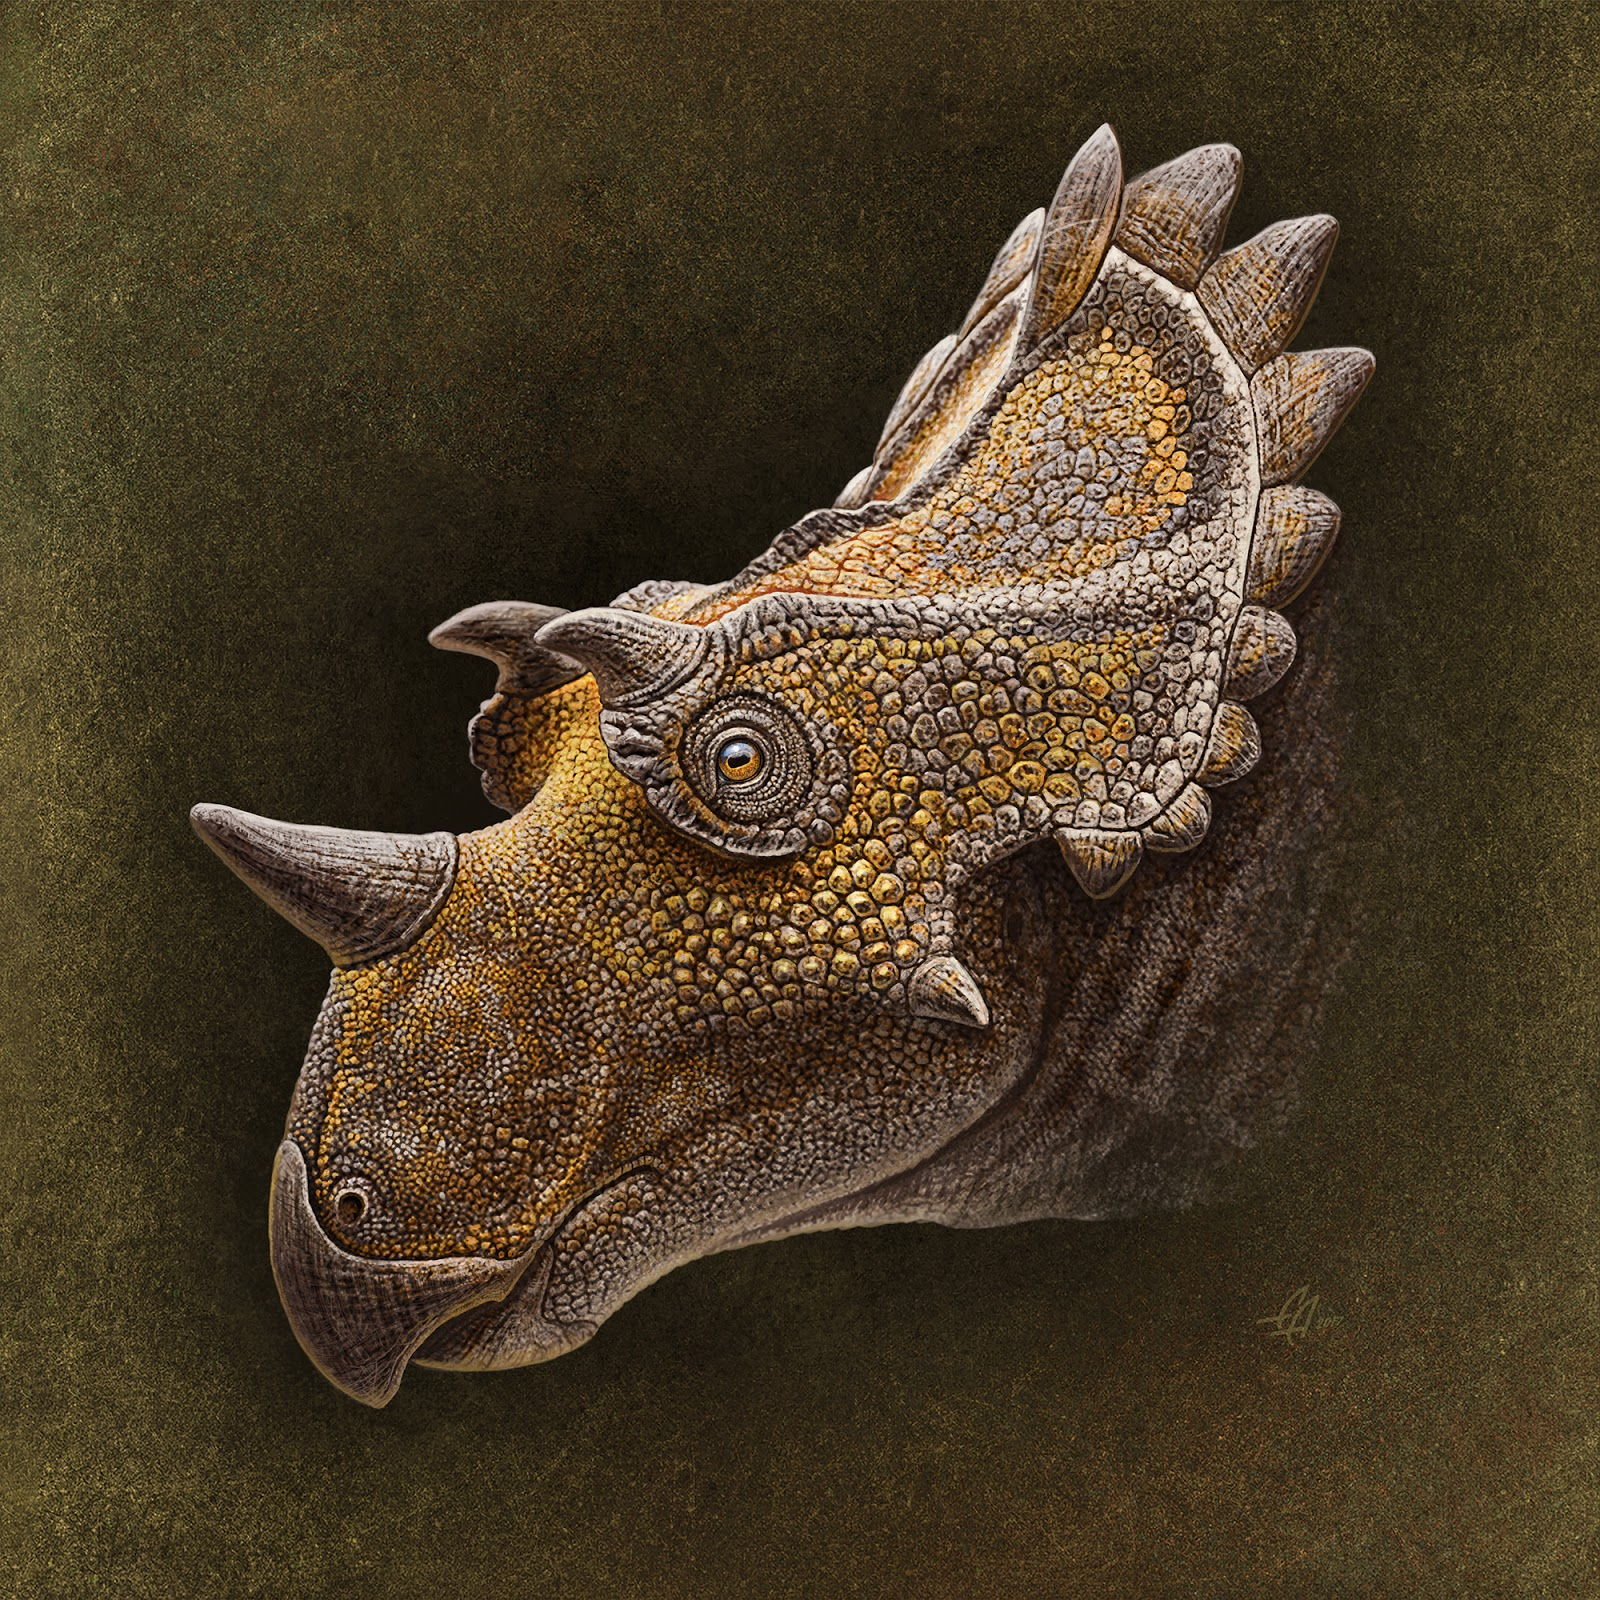 Regaliceratops_head02_2000